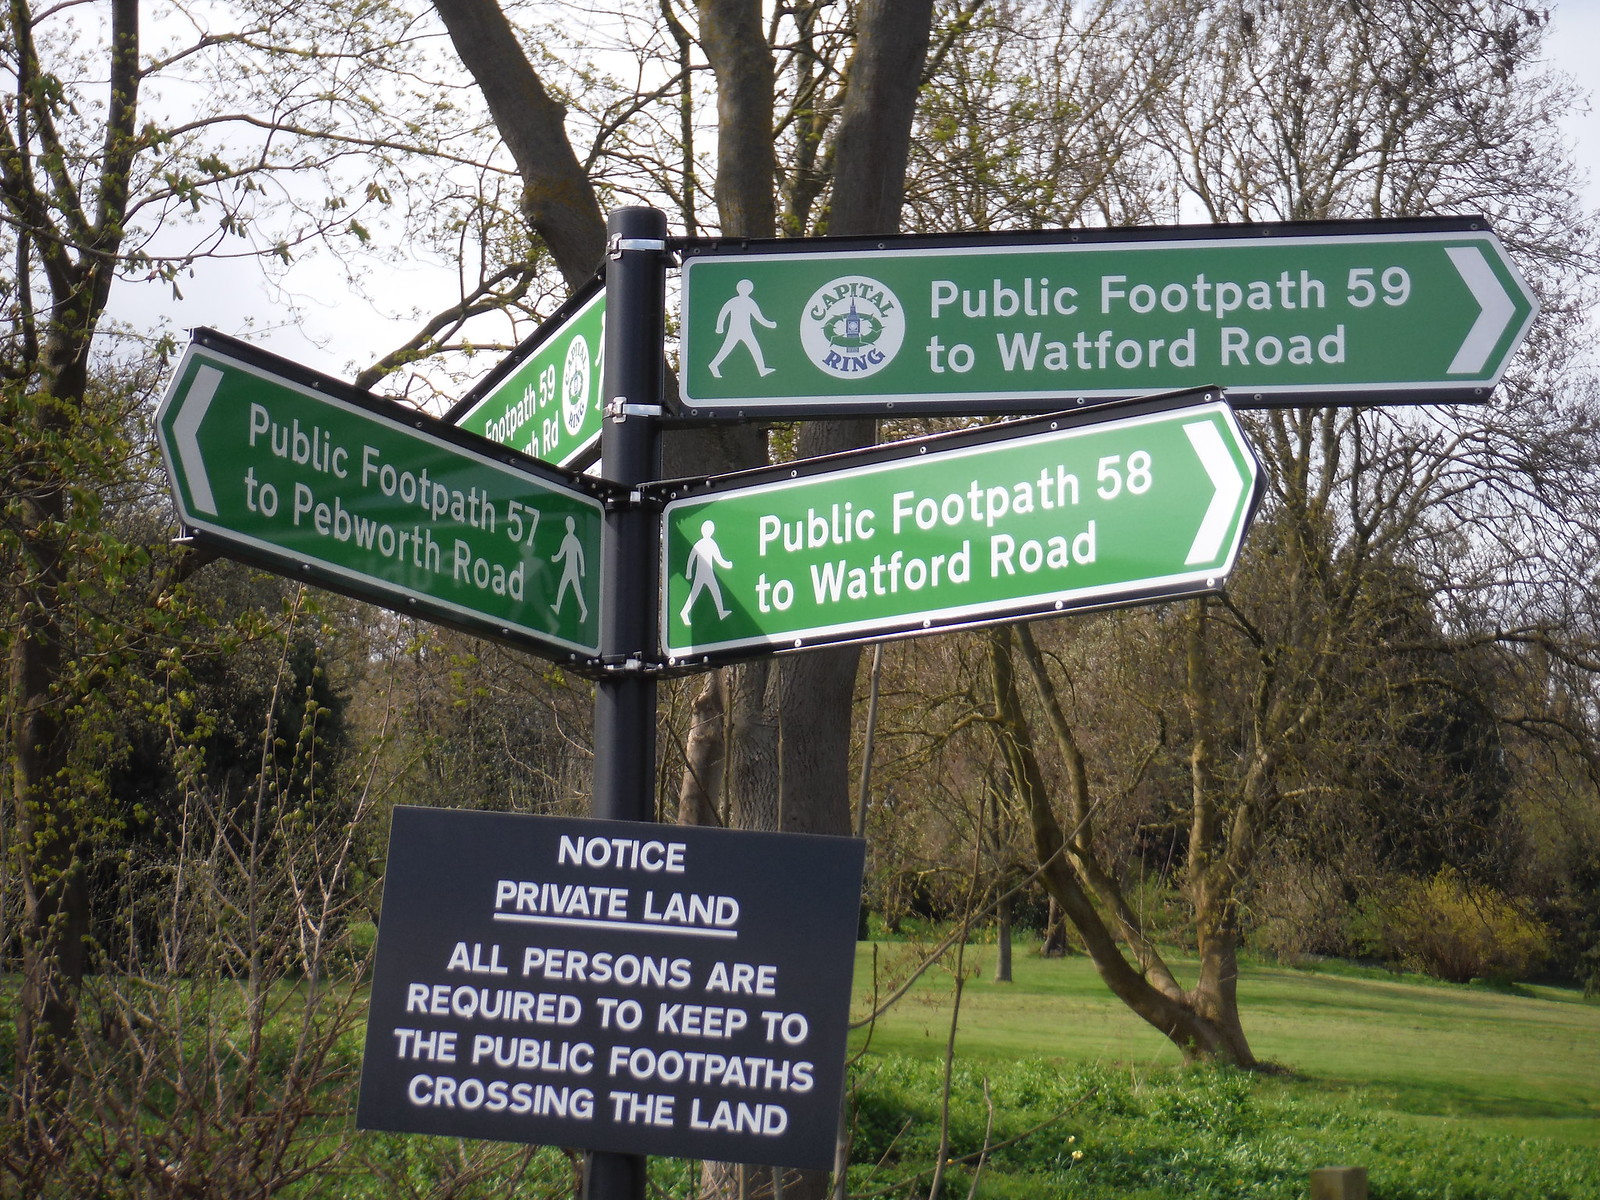 Public Footpath Junction at heart of Dispute between The Ramblers and Harrow School SWC Short Walk 40 - Harrow-on-the-Hill (South Kenton or Northwick Park to Harrow-on-the-Hill)